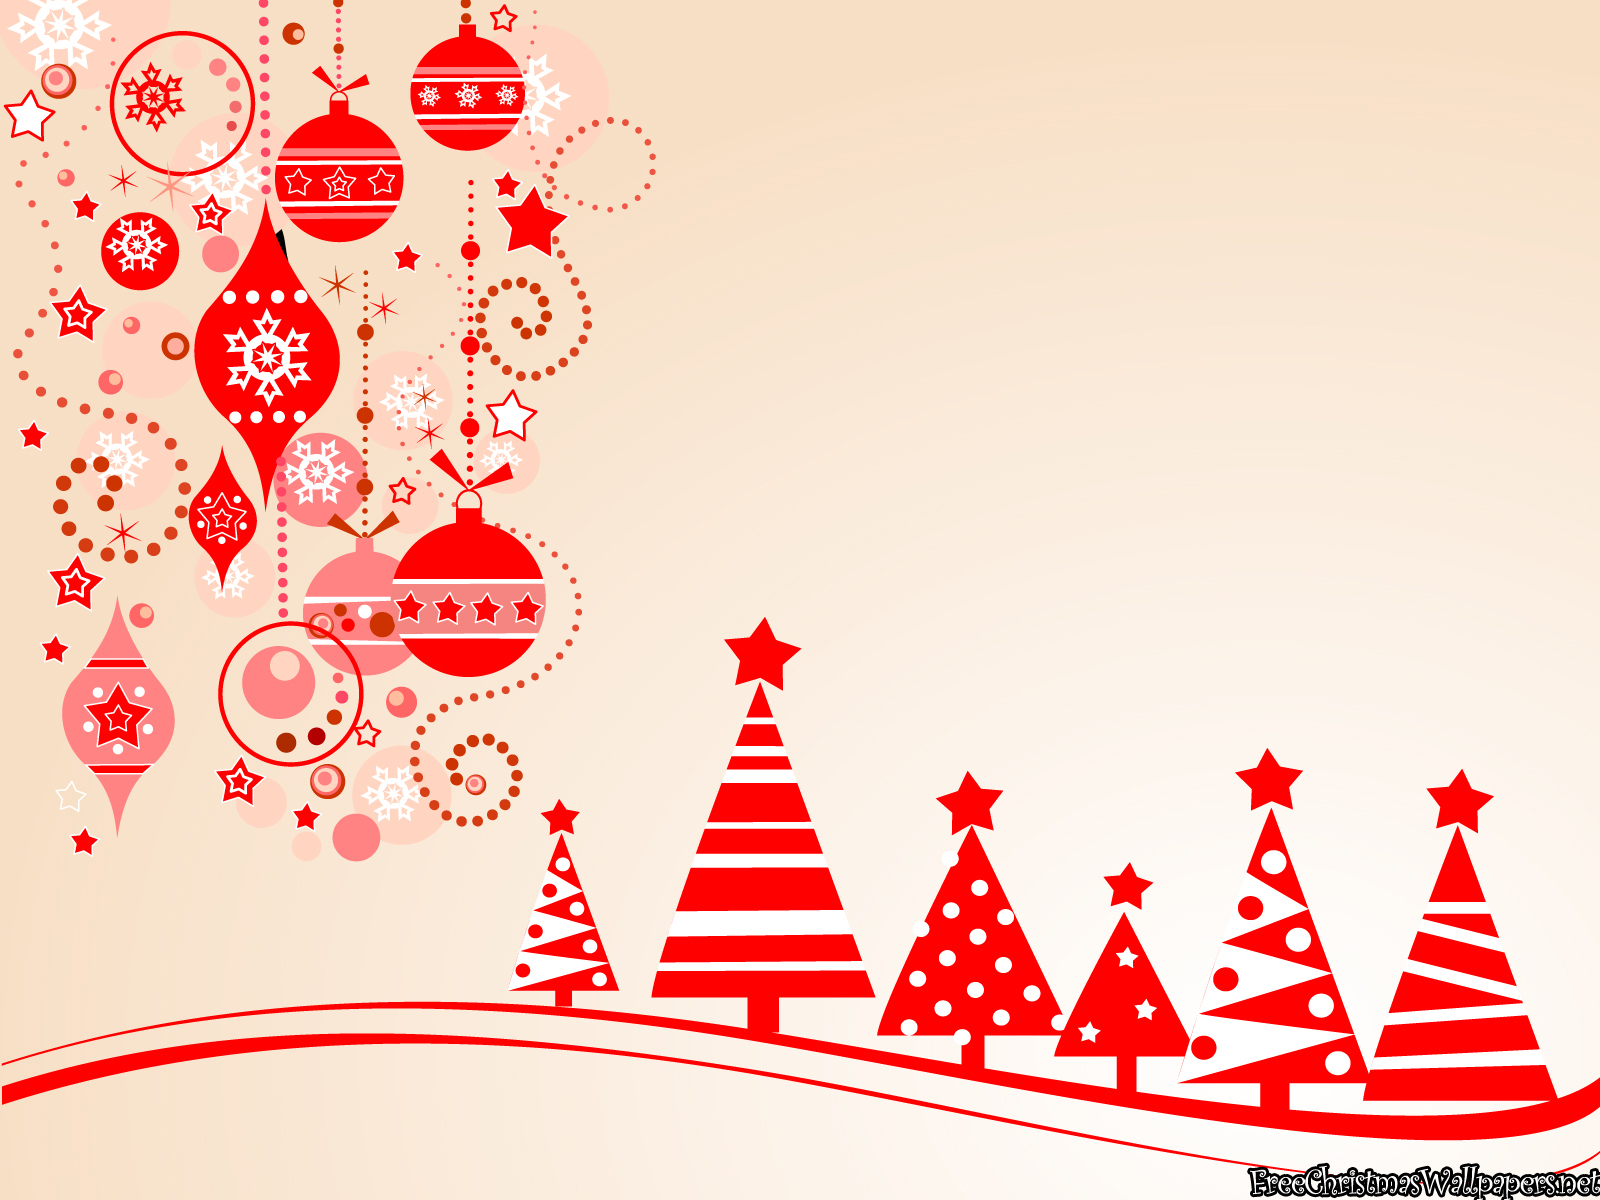 Large print free clipart for christmas.